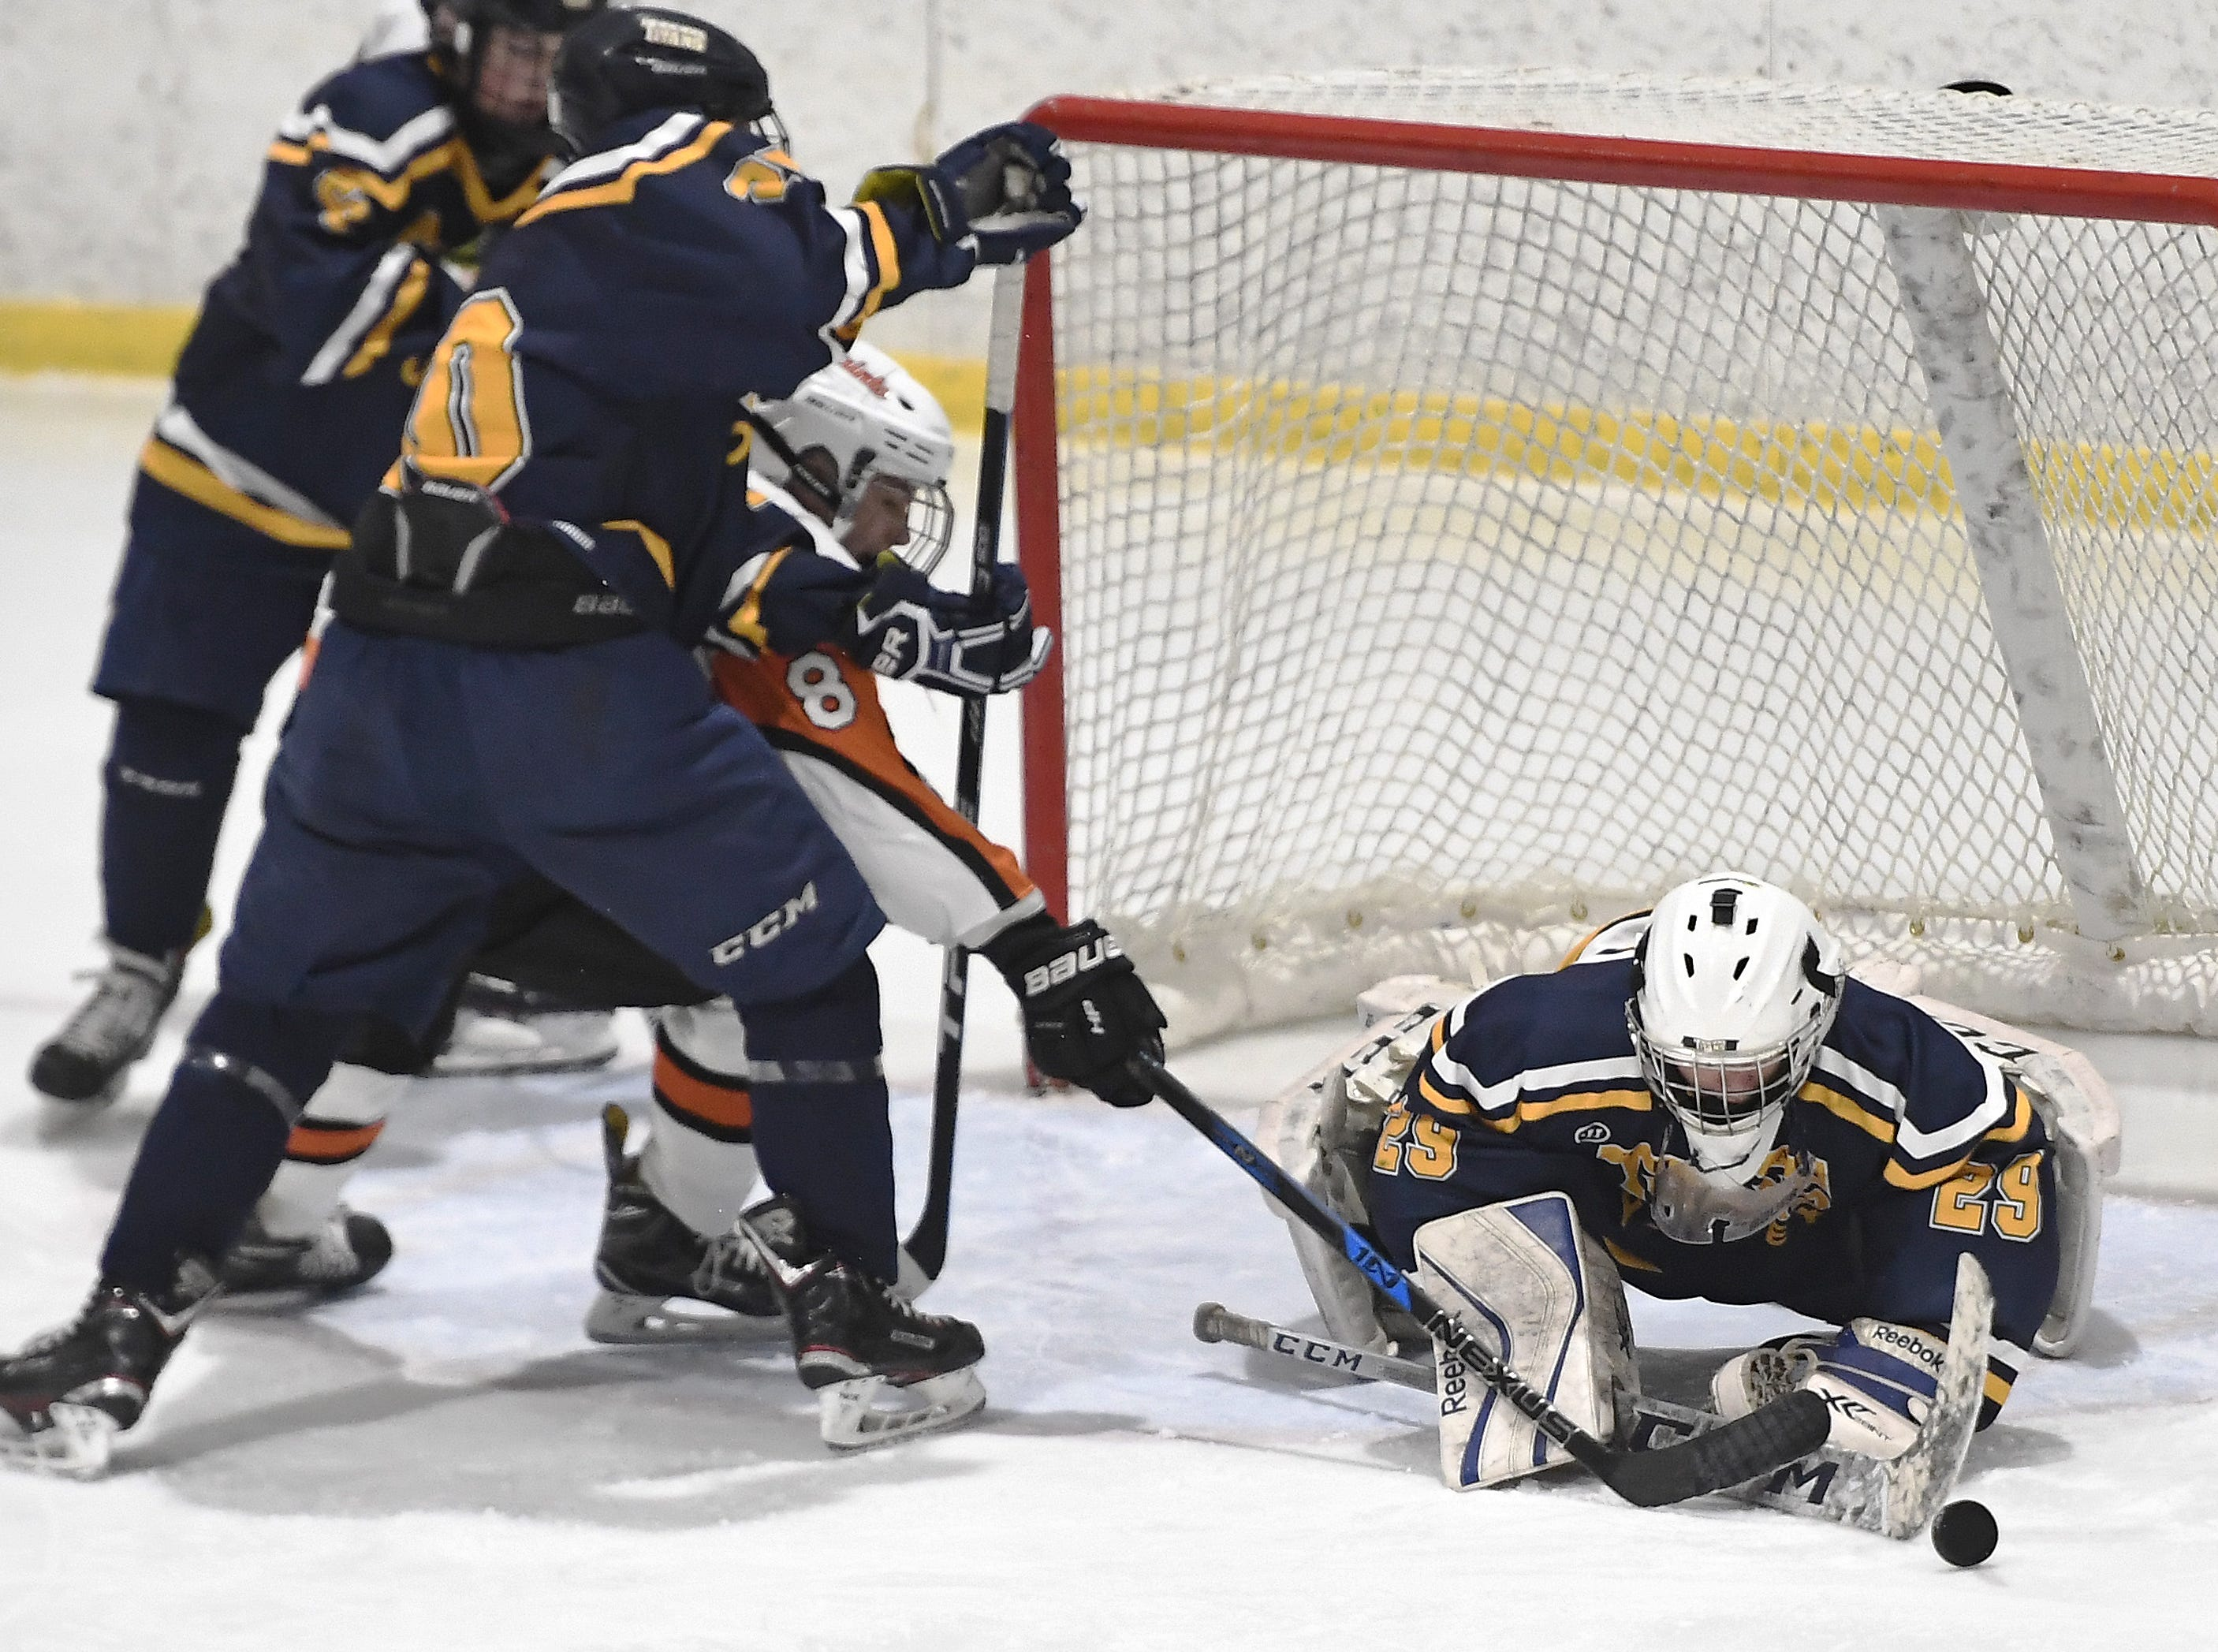 Webster Thomas goalie Cody Rougeux, right, pokes the puck away as Matthew Stuewe shields  Churchville-Chili's Dylan Clark off the play during a regular season game played at the Scottsville Ice Arena, Tuesday, Jan. 22, 2019. Webster Thomas beat Chuchville-Chili 4-1.